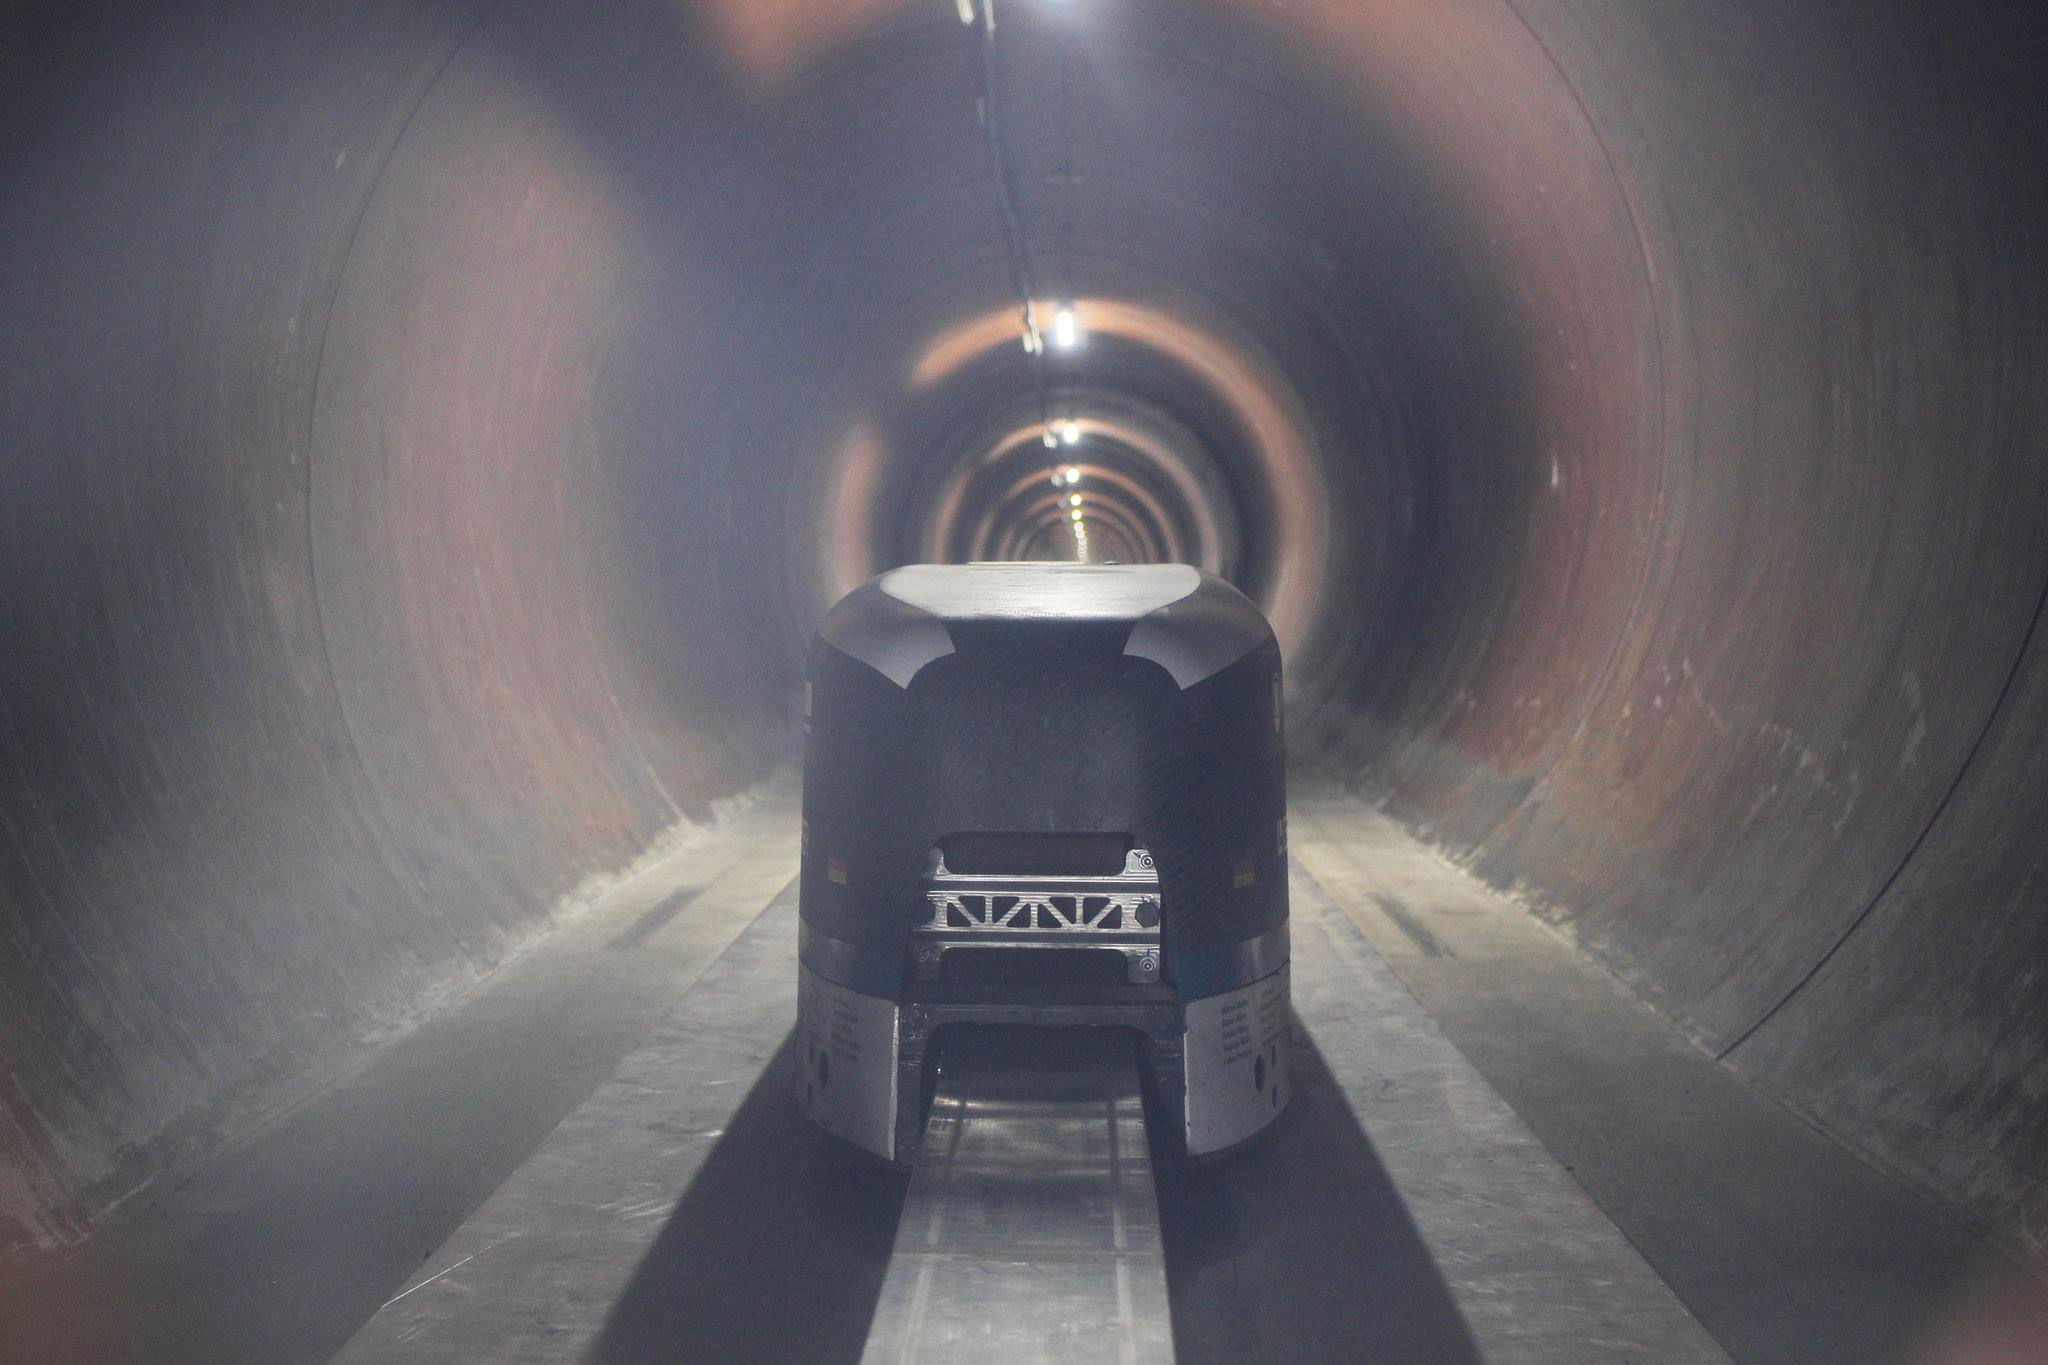 WARR Hyperloop pod inside the test tunnel